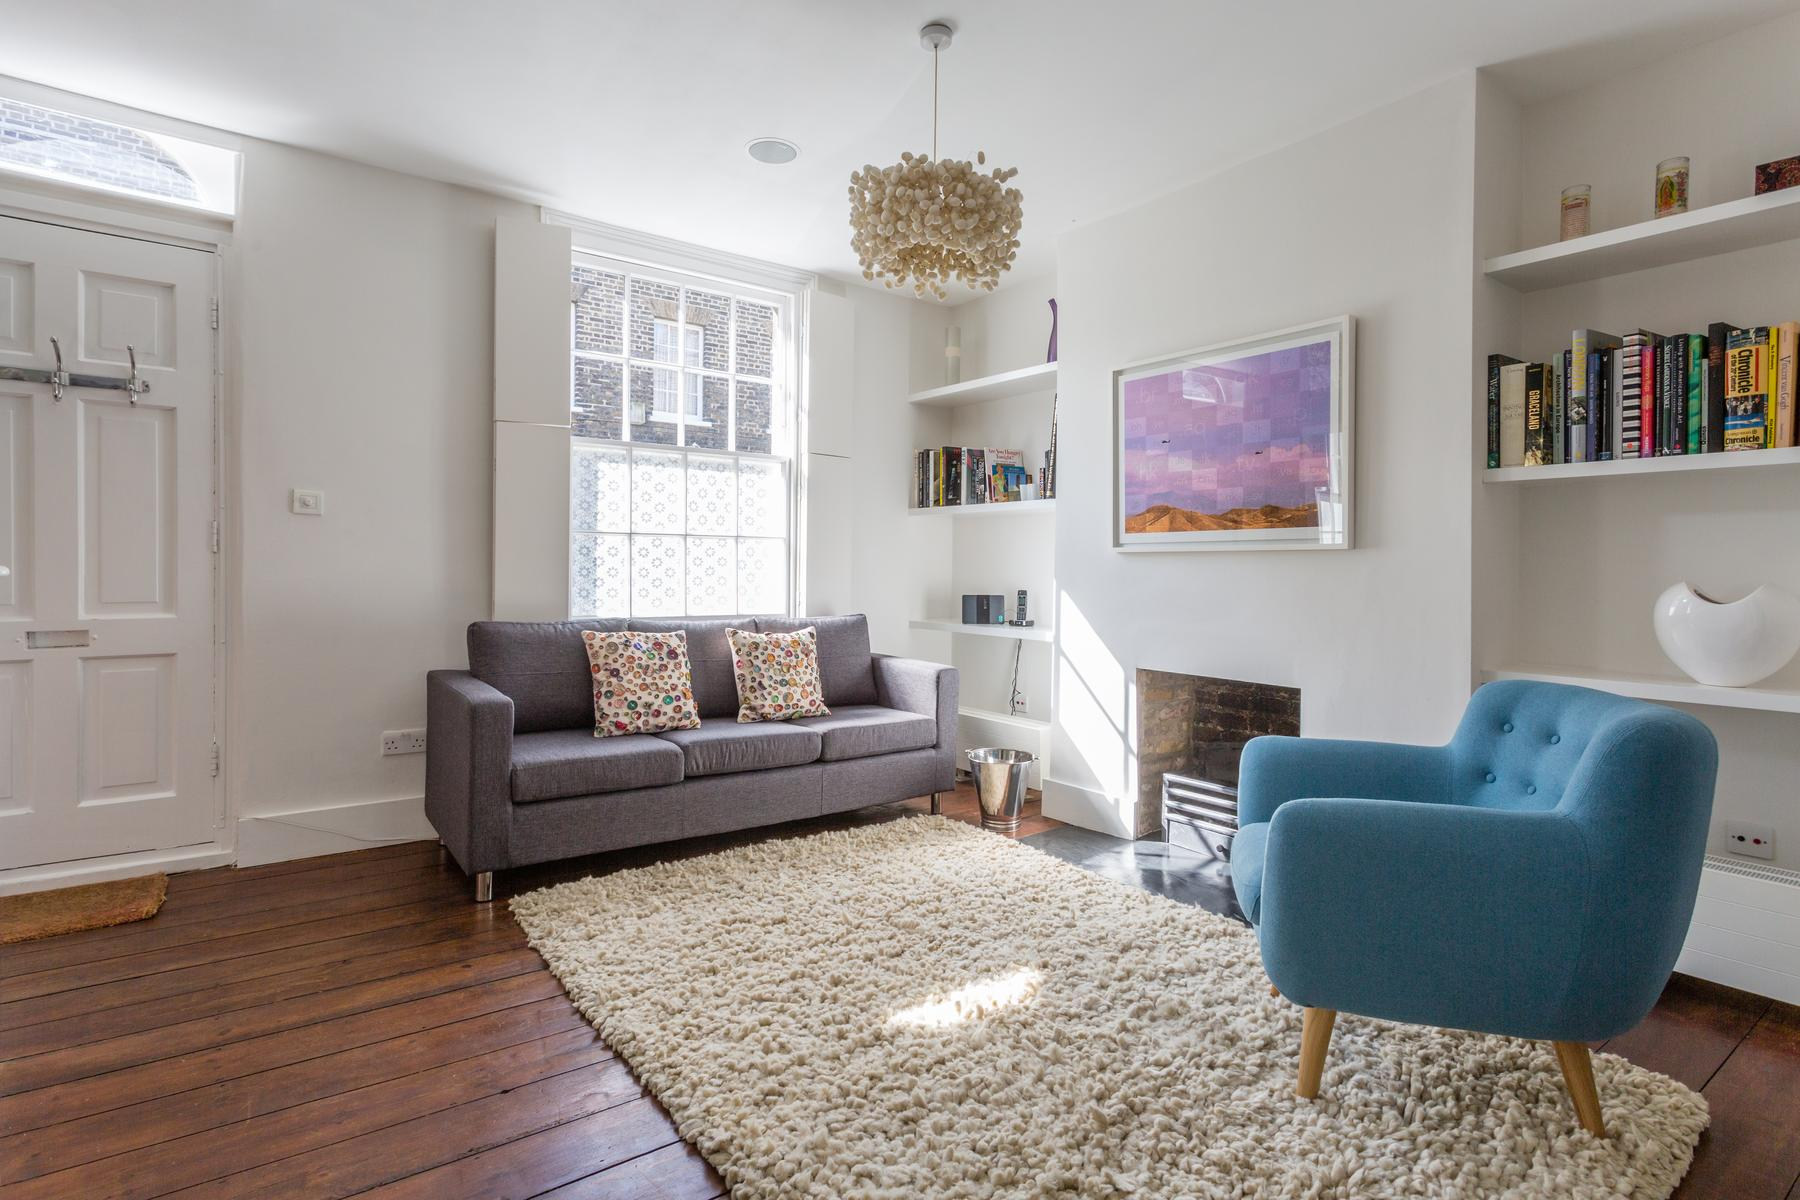 All Luxury Apartments - London apartments within walking ...